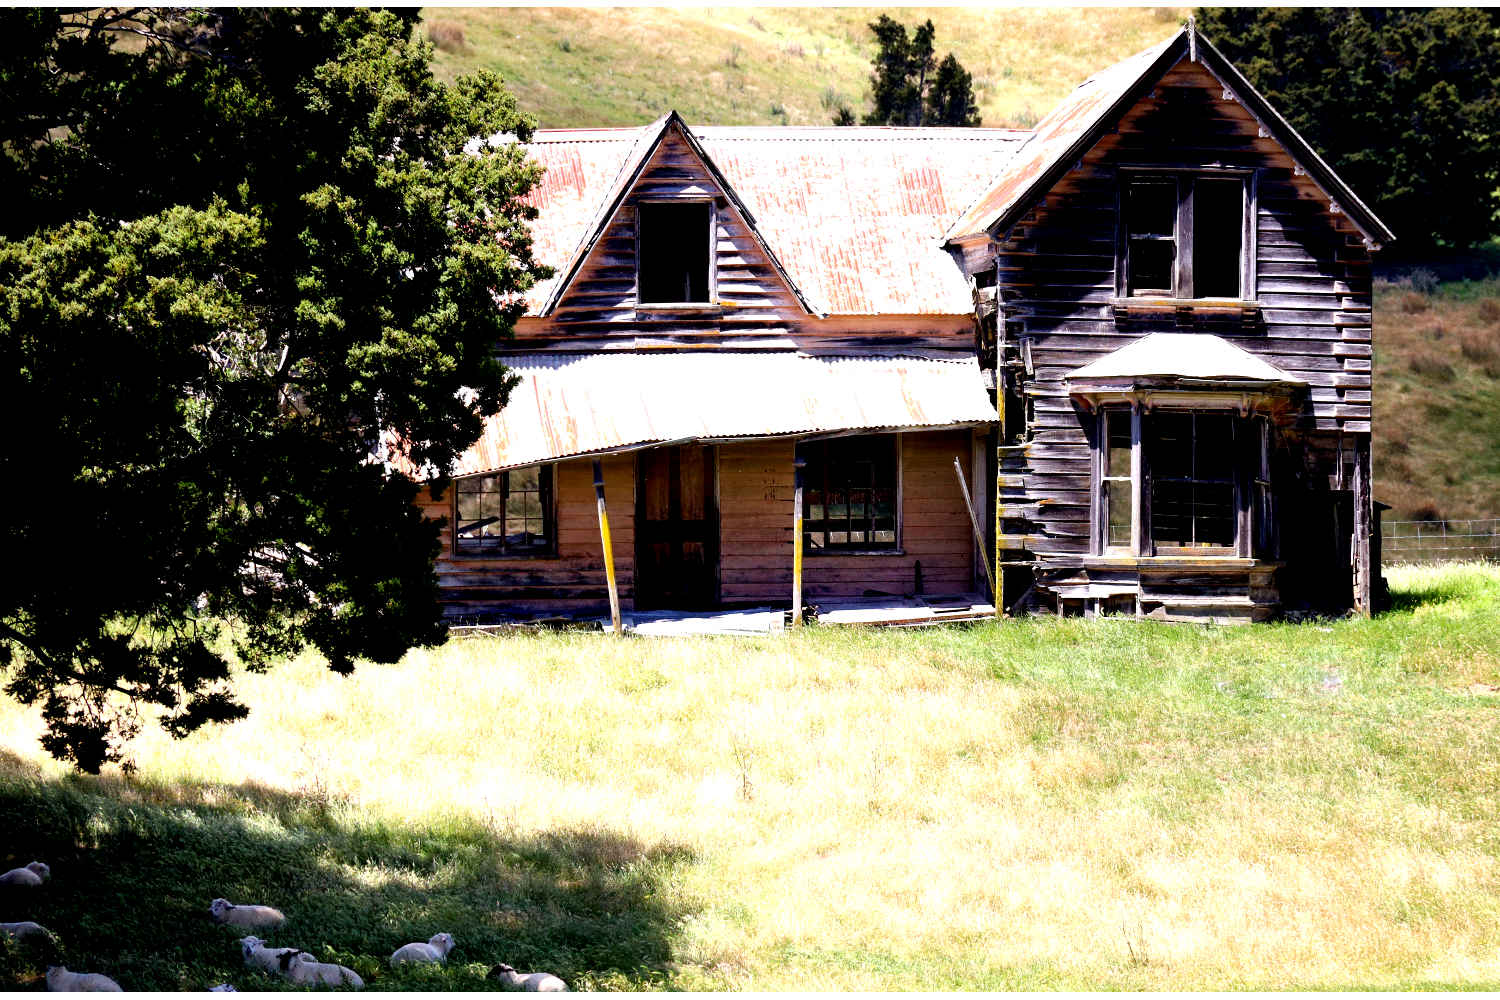 Abandoned farmhouseNelson to Murchison Spring Grove, New Zealand